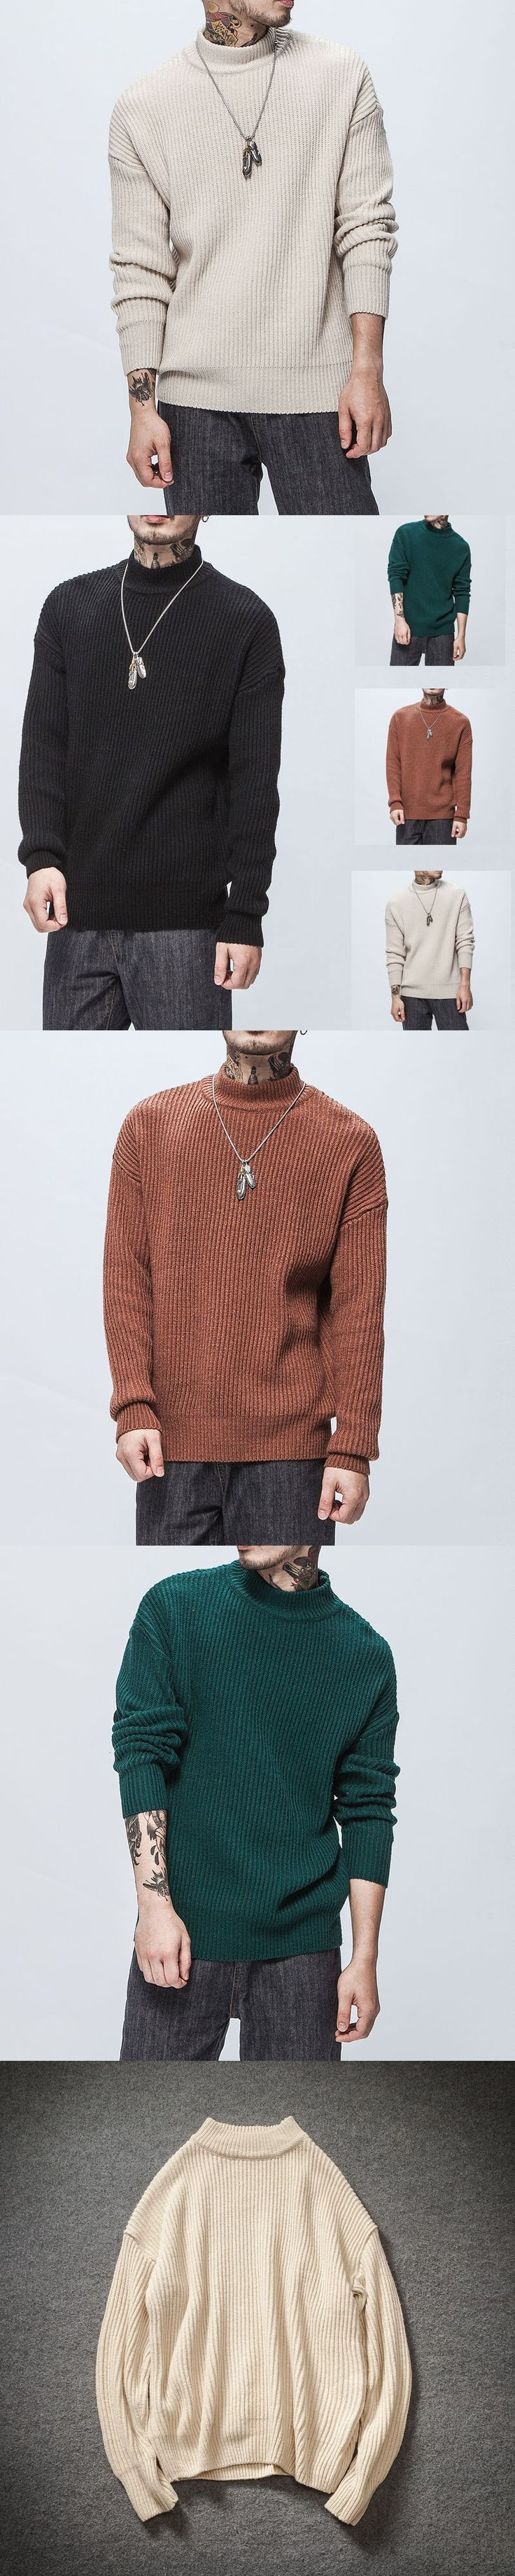 2017 Winter Cashmere Wool Sweater Brand Clothing Mens Sweaters Fashion Casual Shirt Pullover Men Pull O-Neck S-XXL